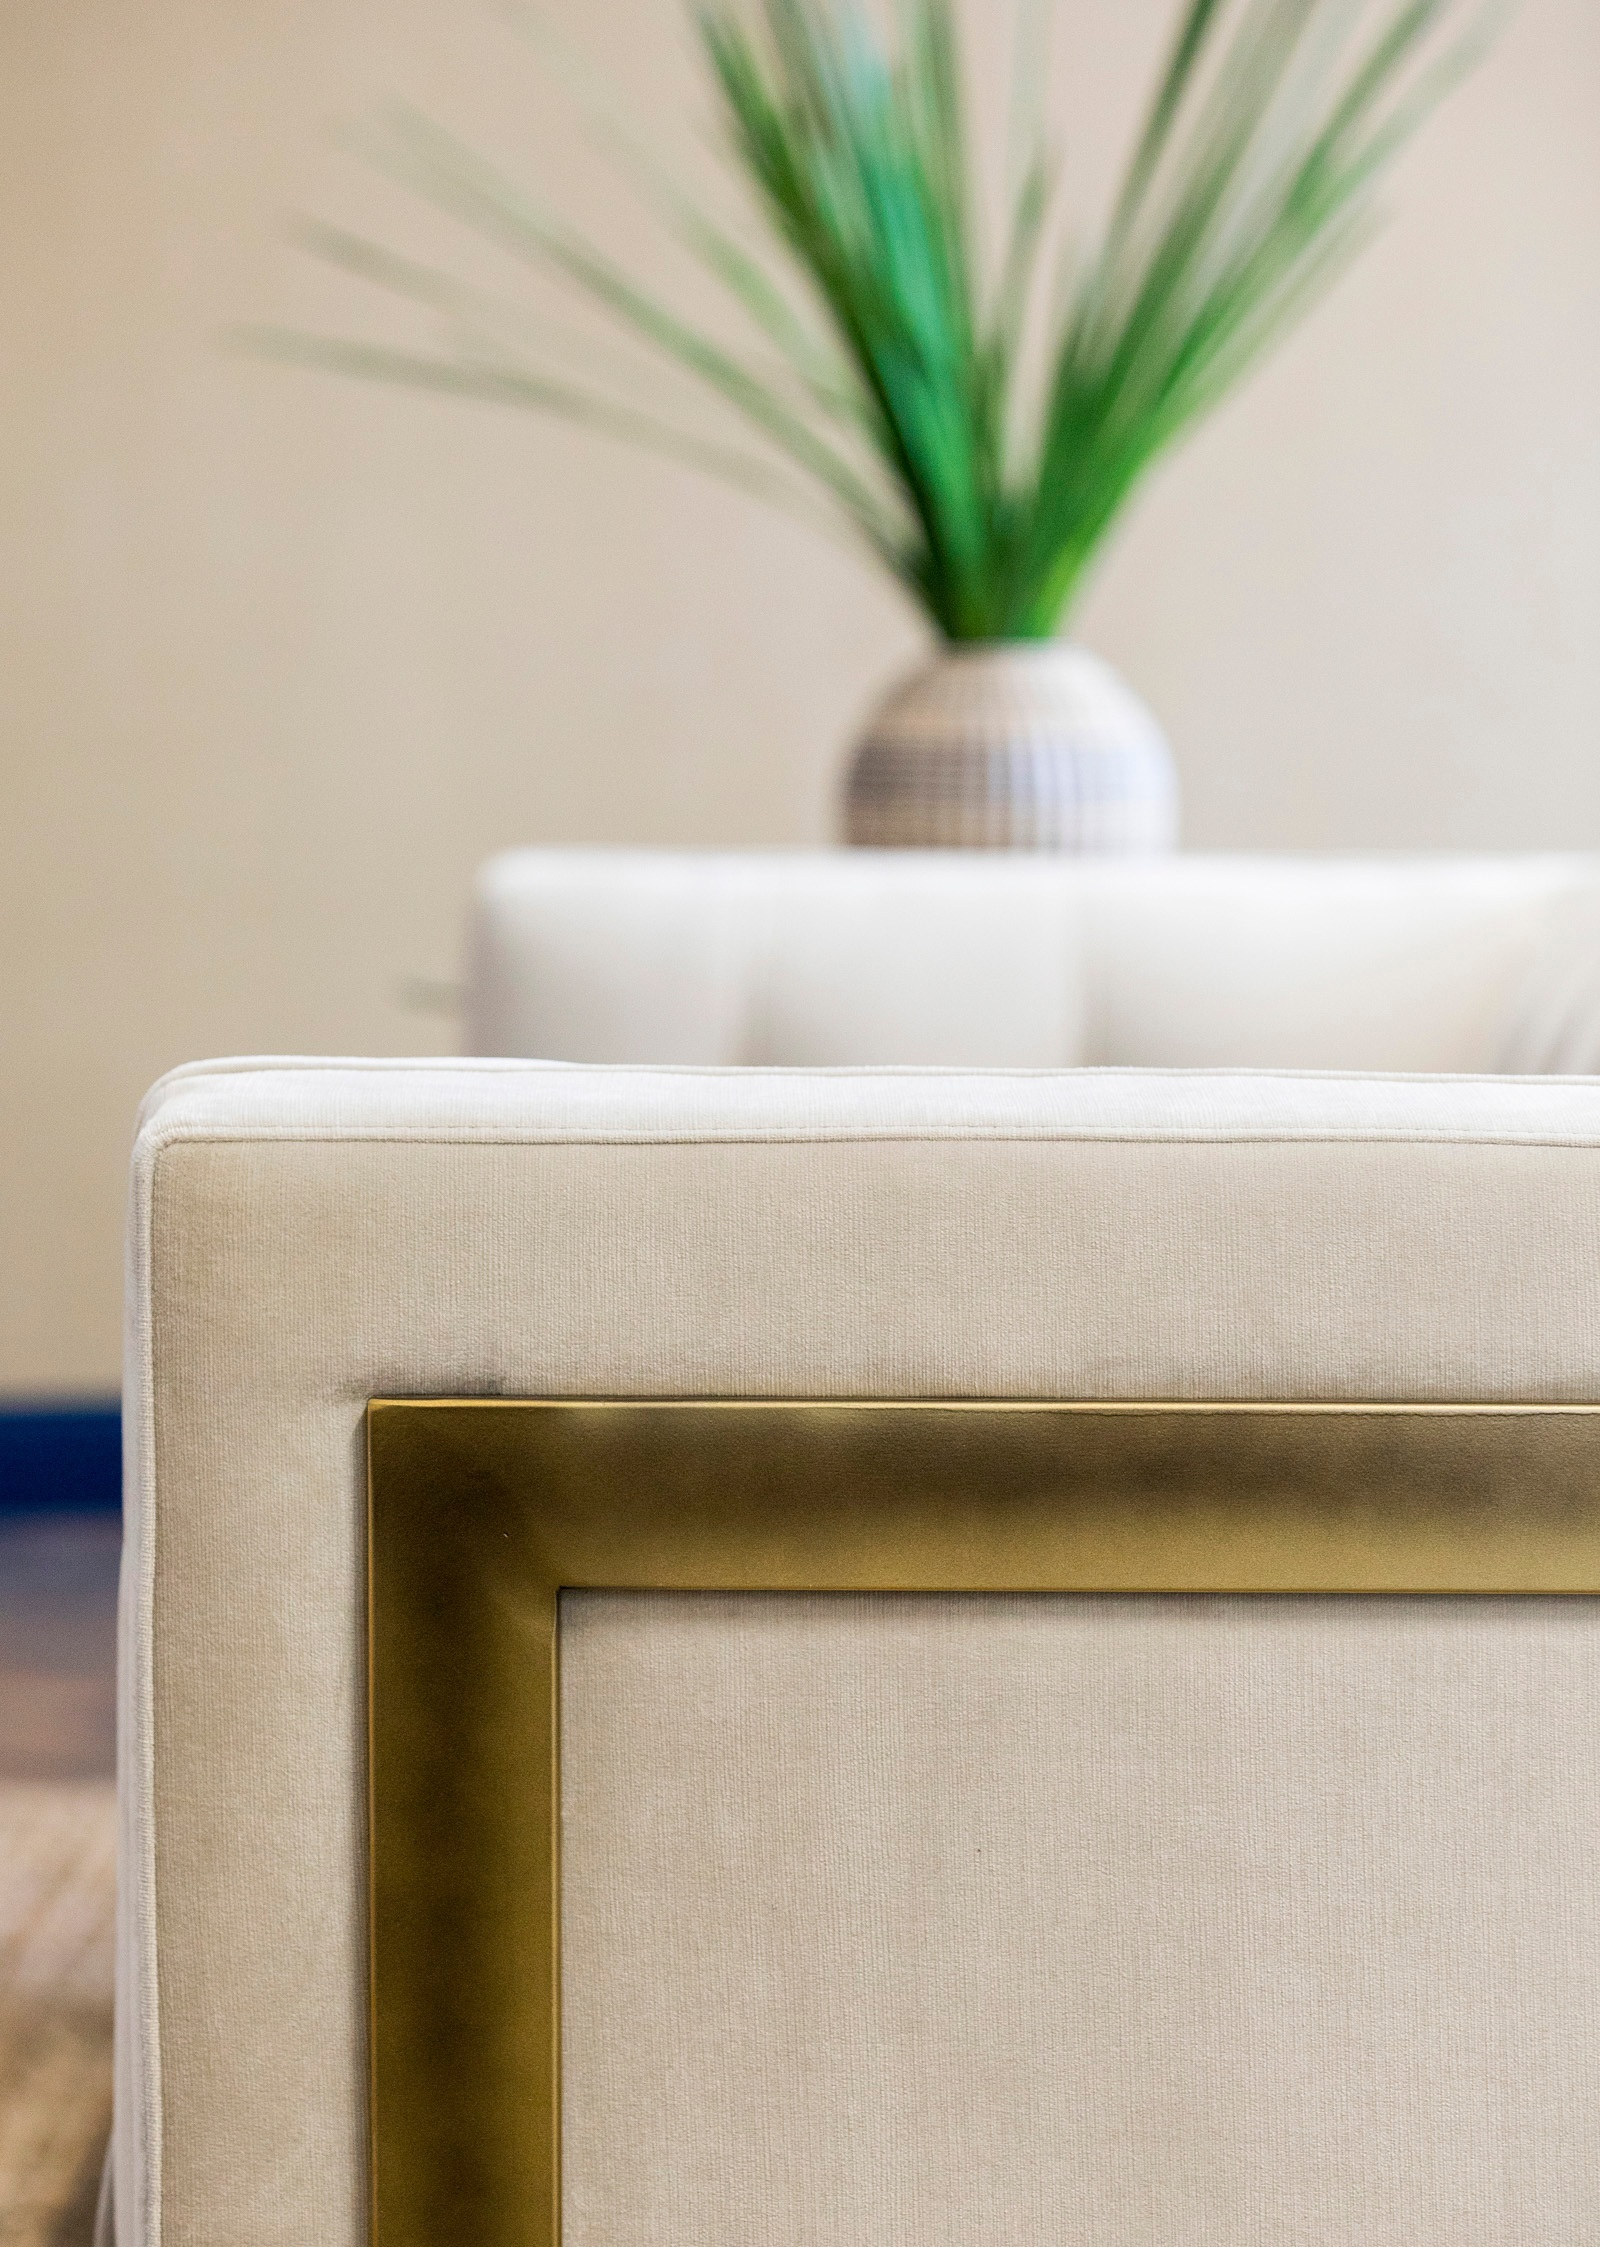 Sofa Detail | Vela Creative